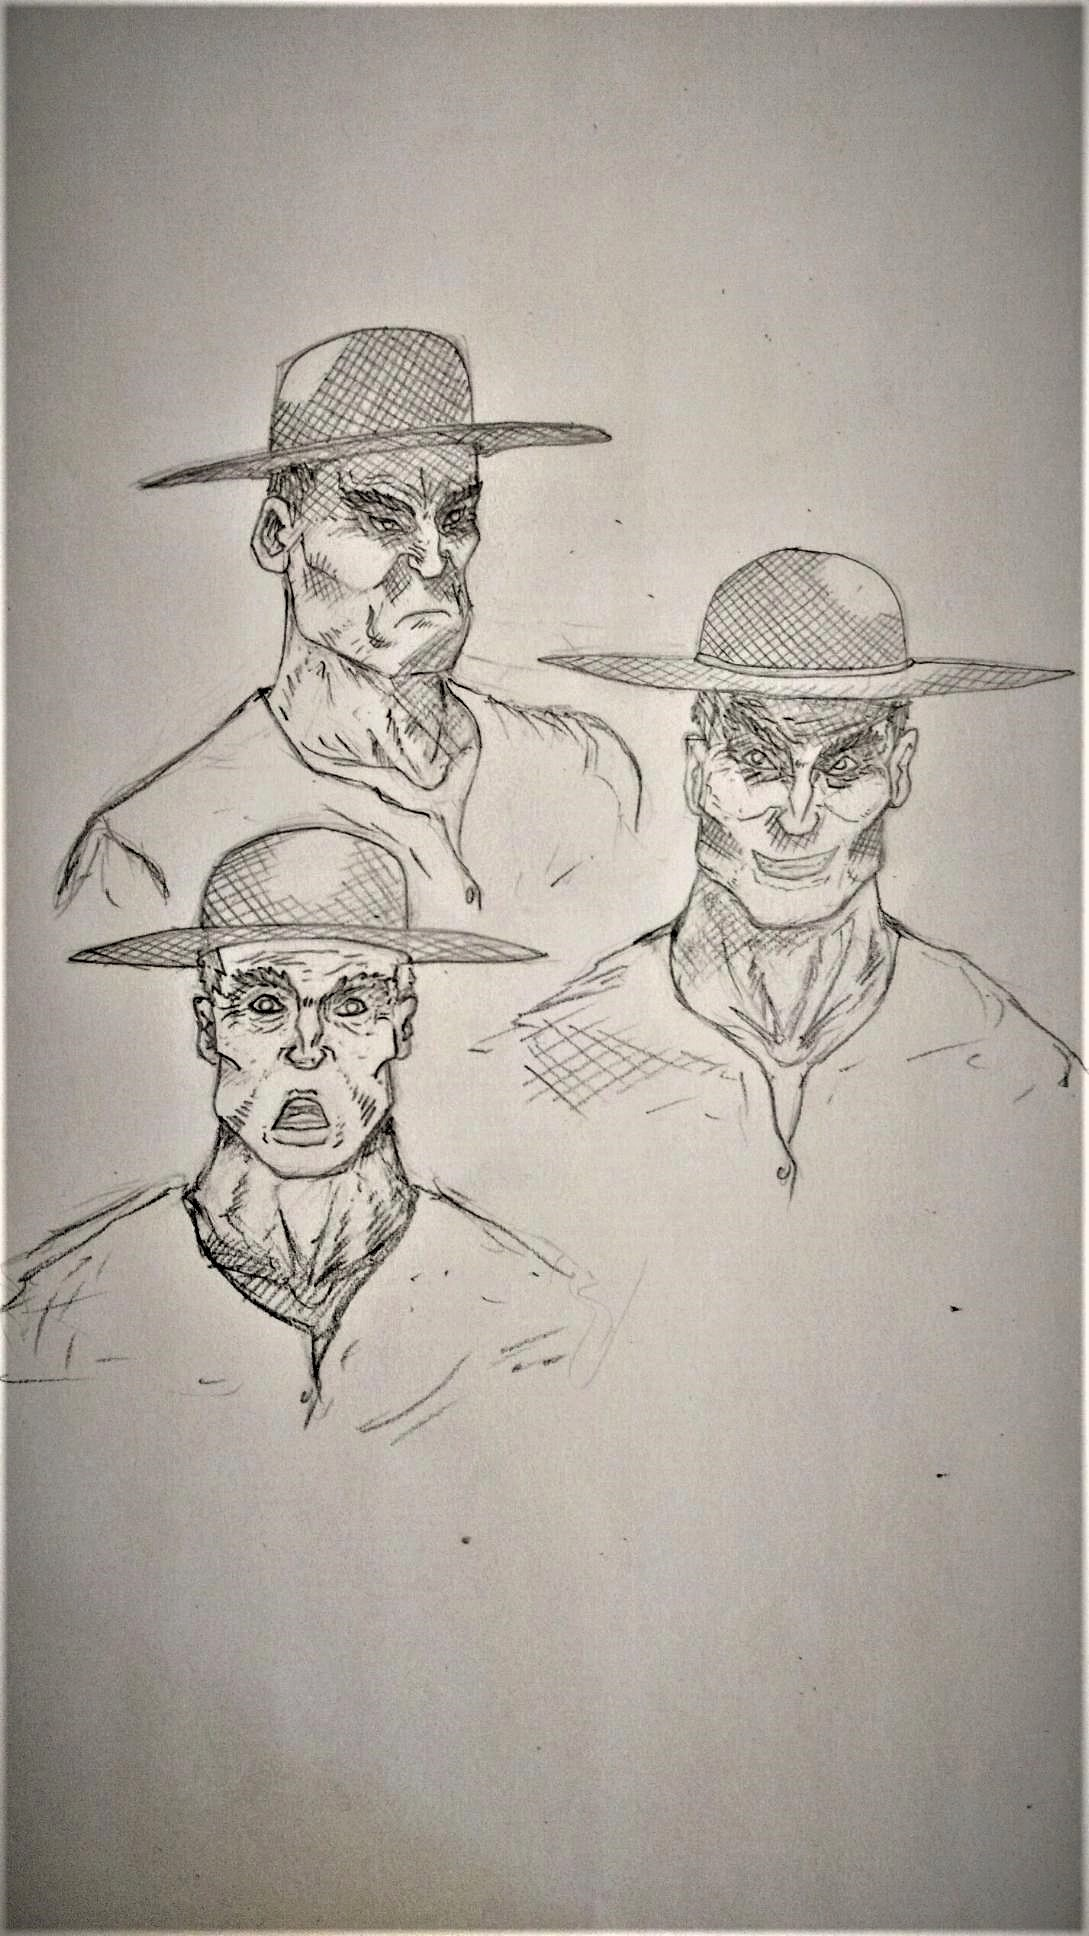 facial studies of nerrick, biggest bully in all of the cross.